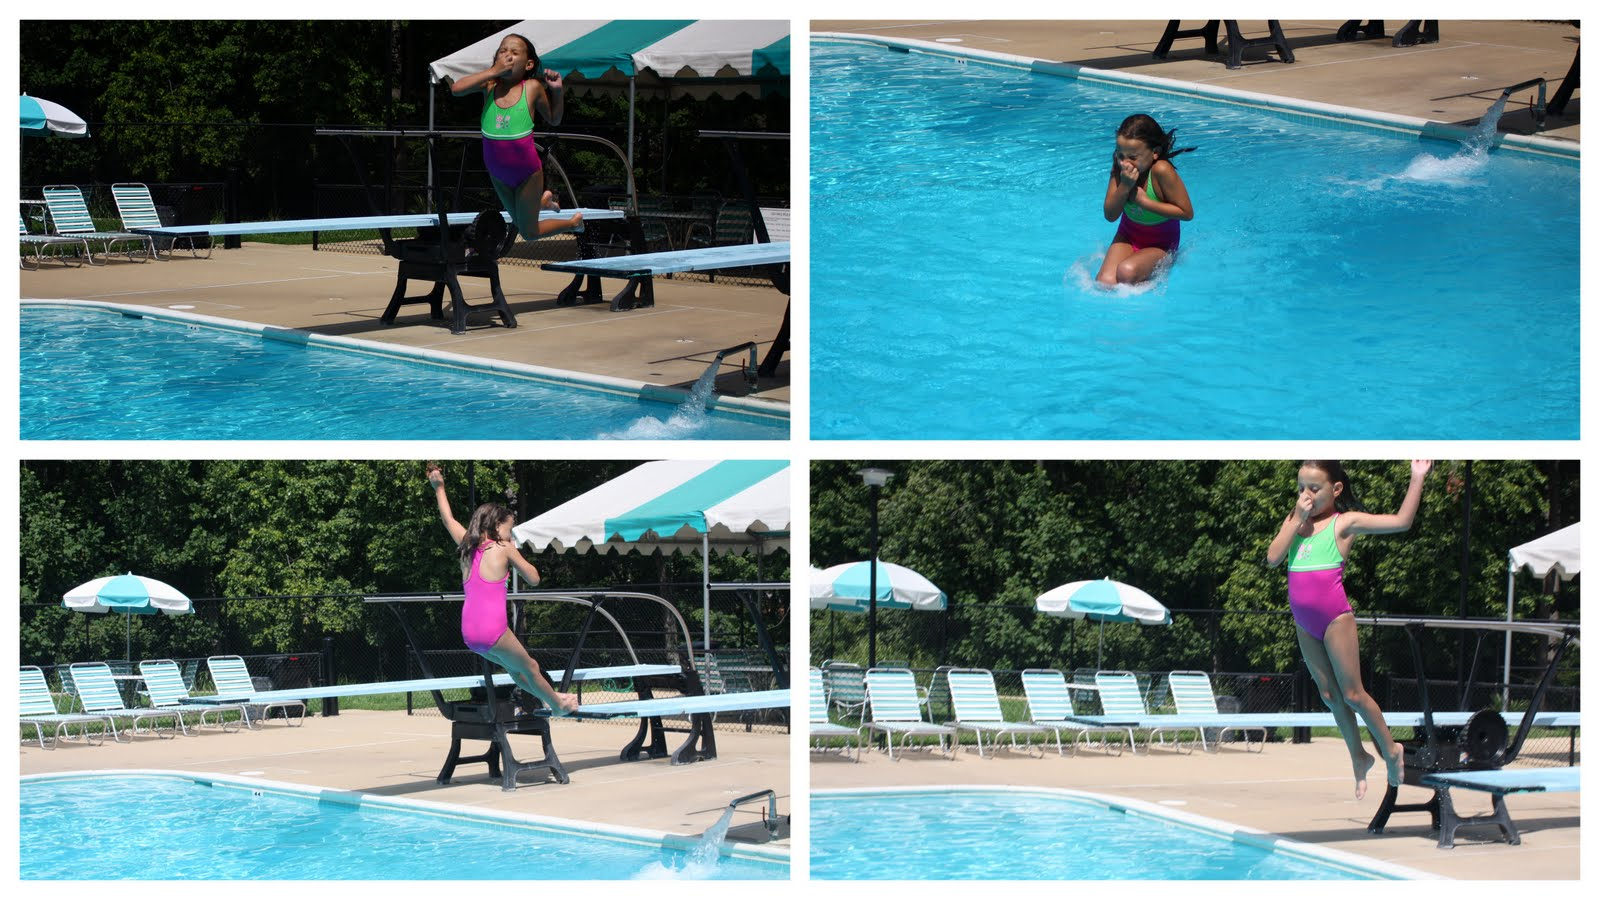 Maney Family Fun: Progress at the pool!